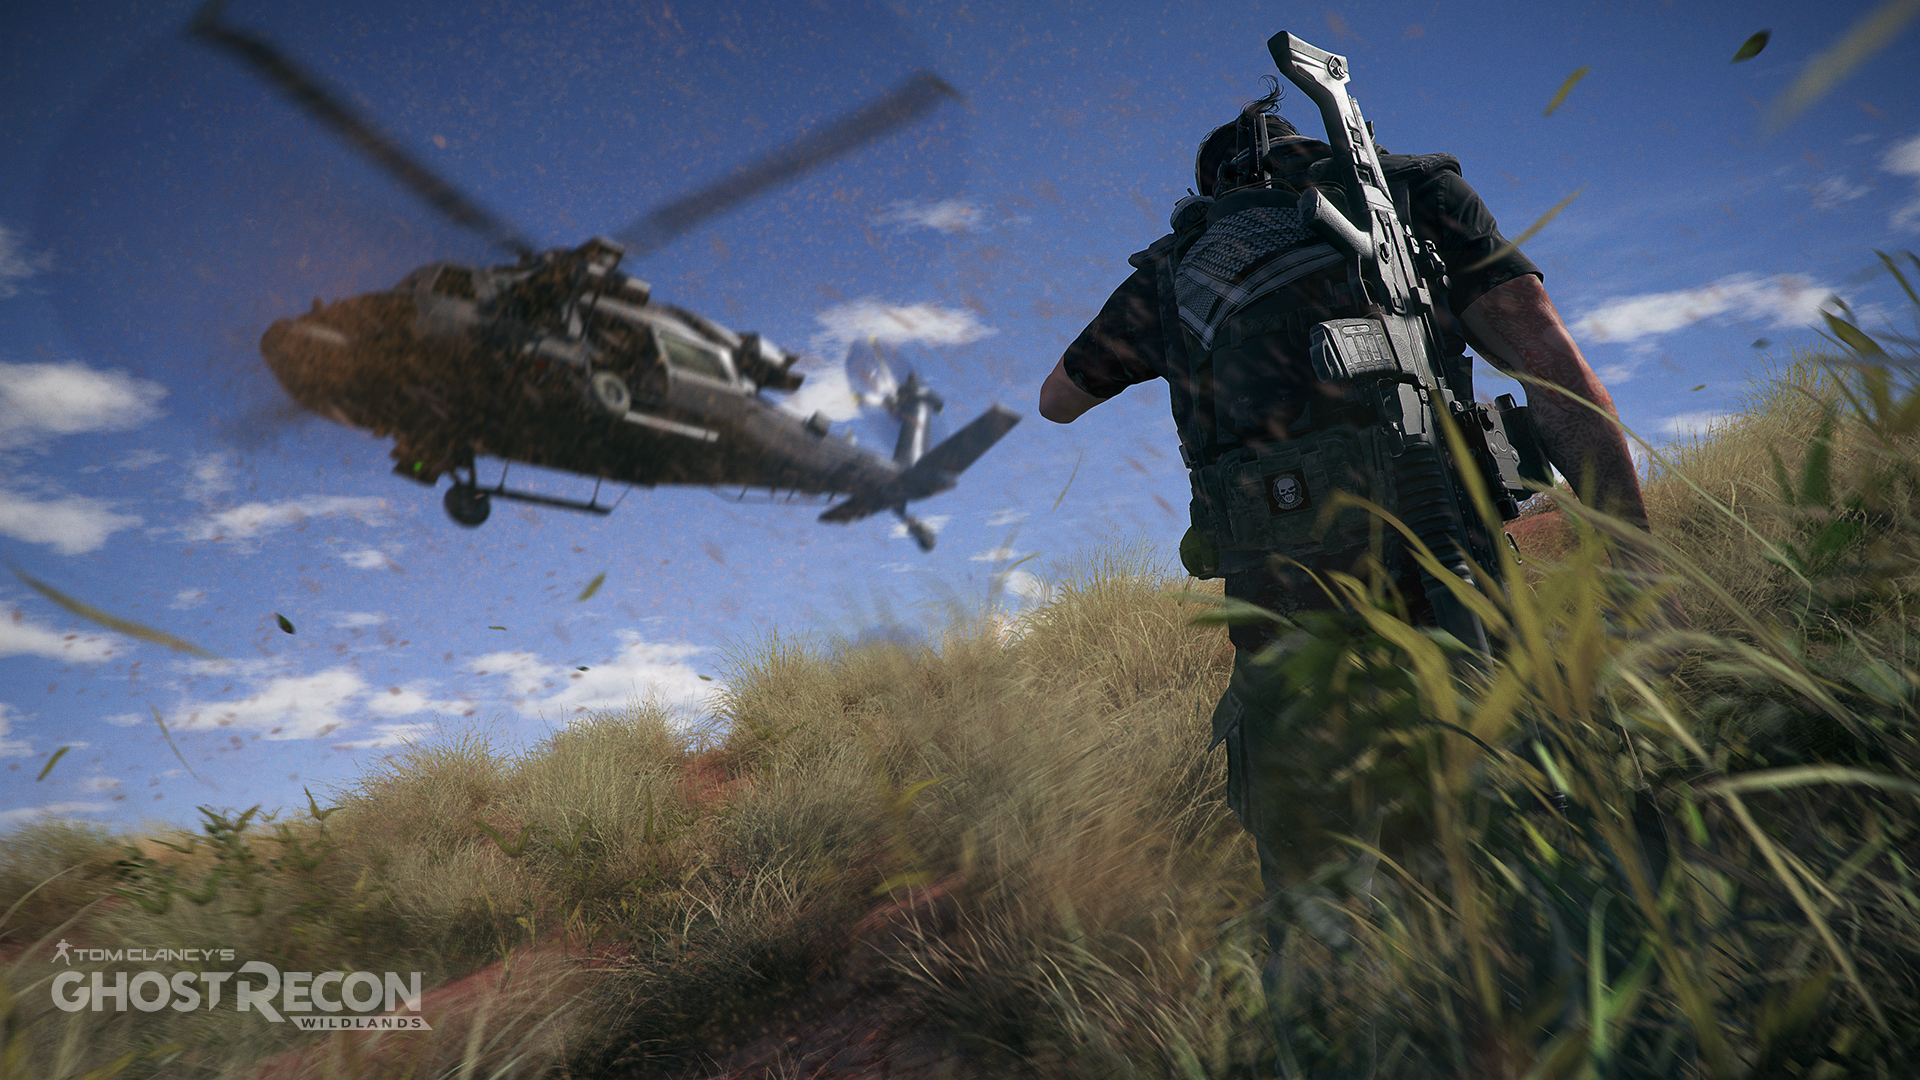 """Ghost Recon: Wildlands Gets New """"Helicopter Update""""; PvP Open Beta Coming Soon"""